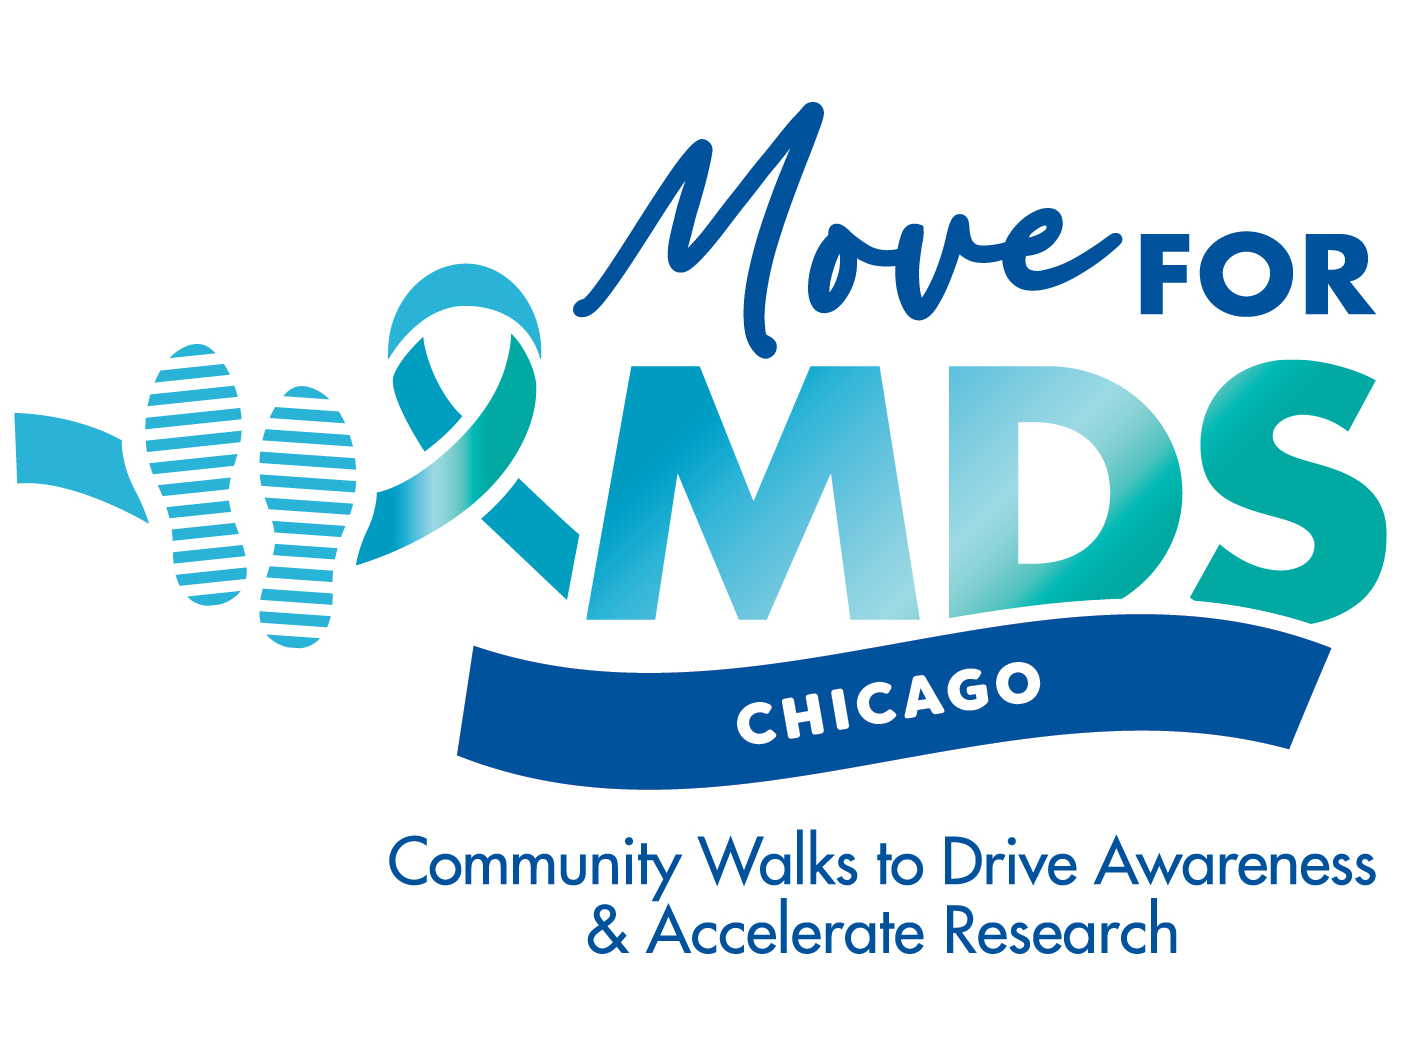 Mds moveformds logo chicago carousel